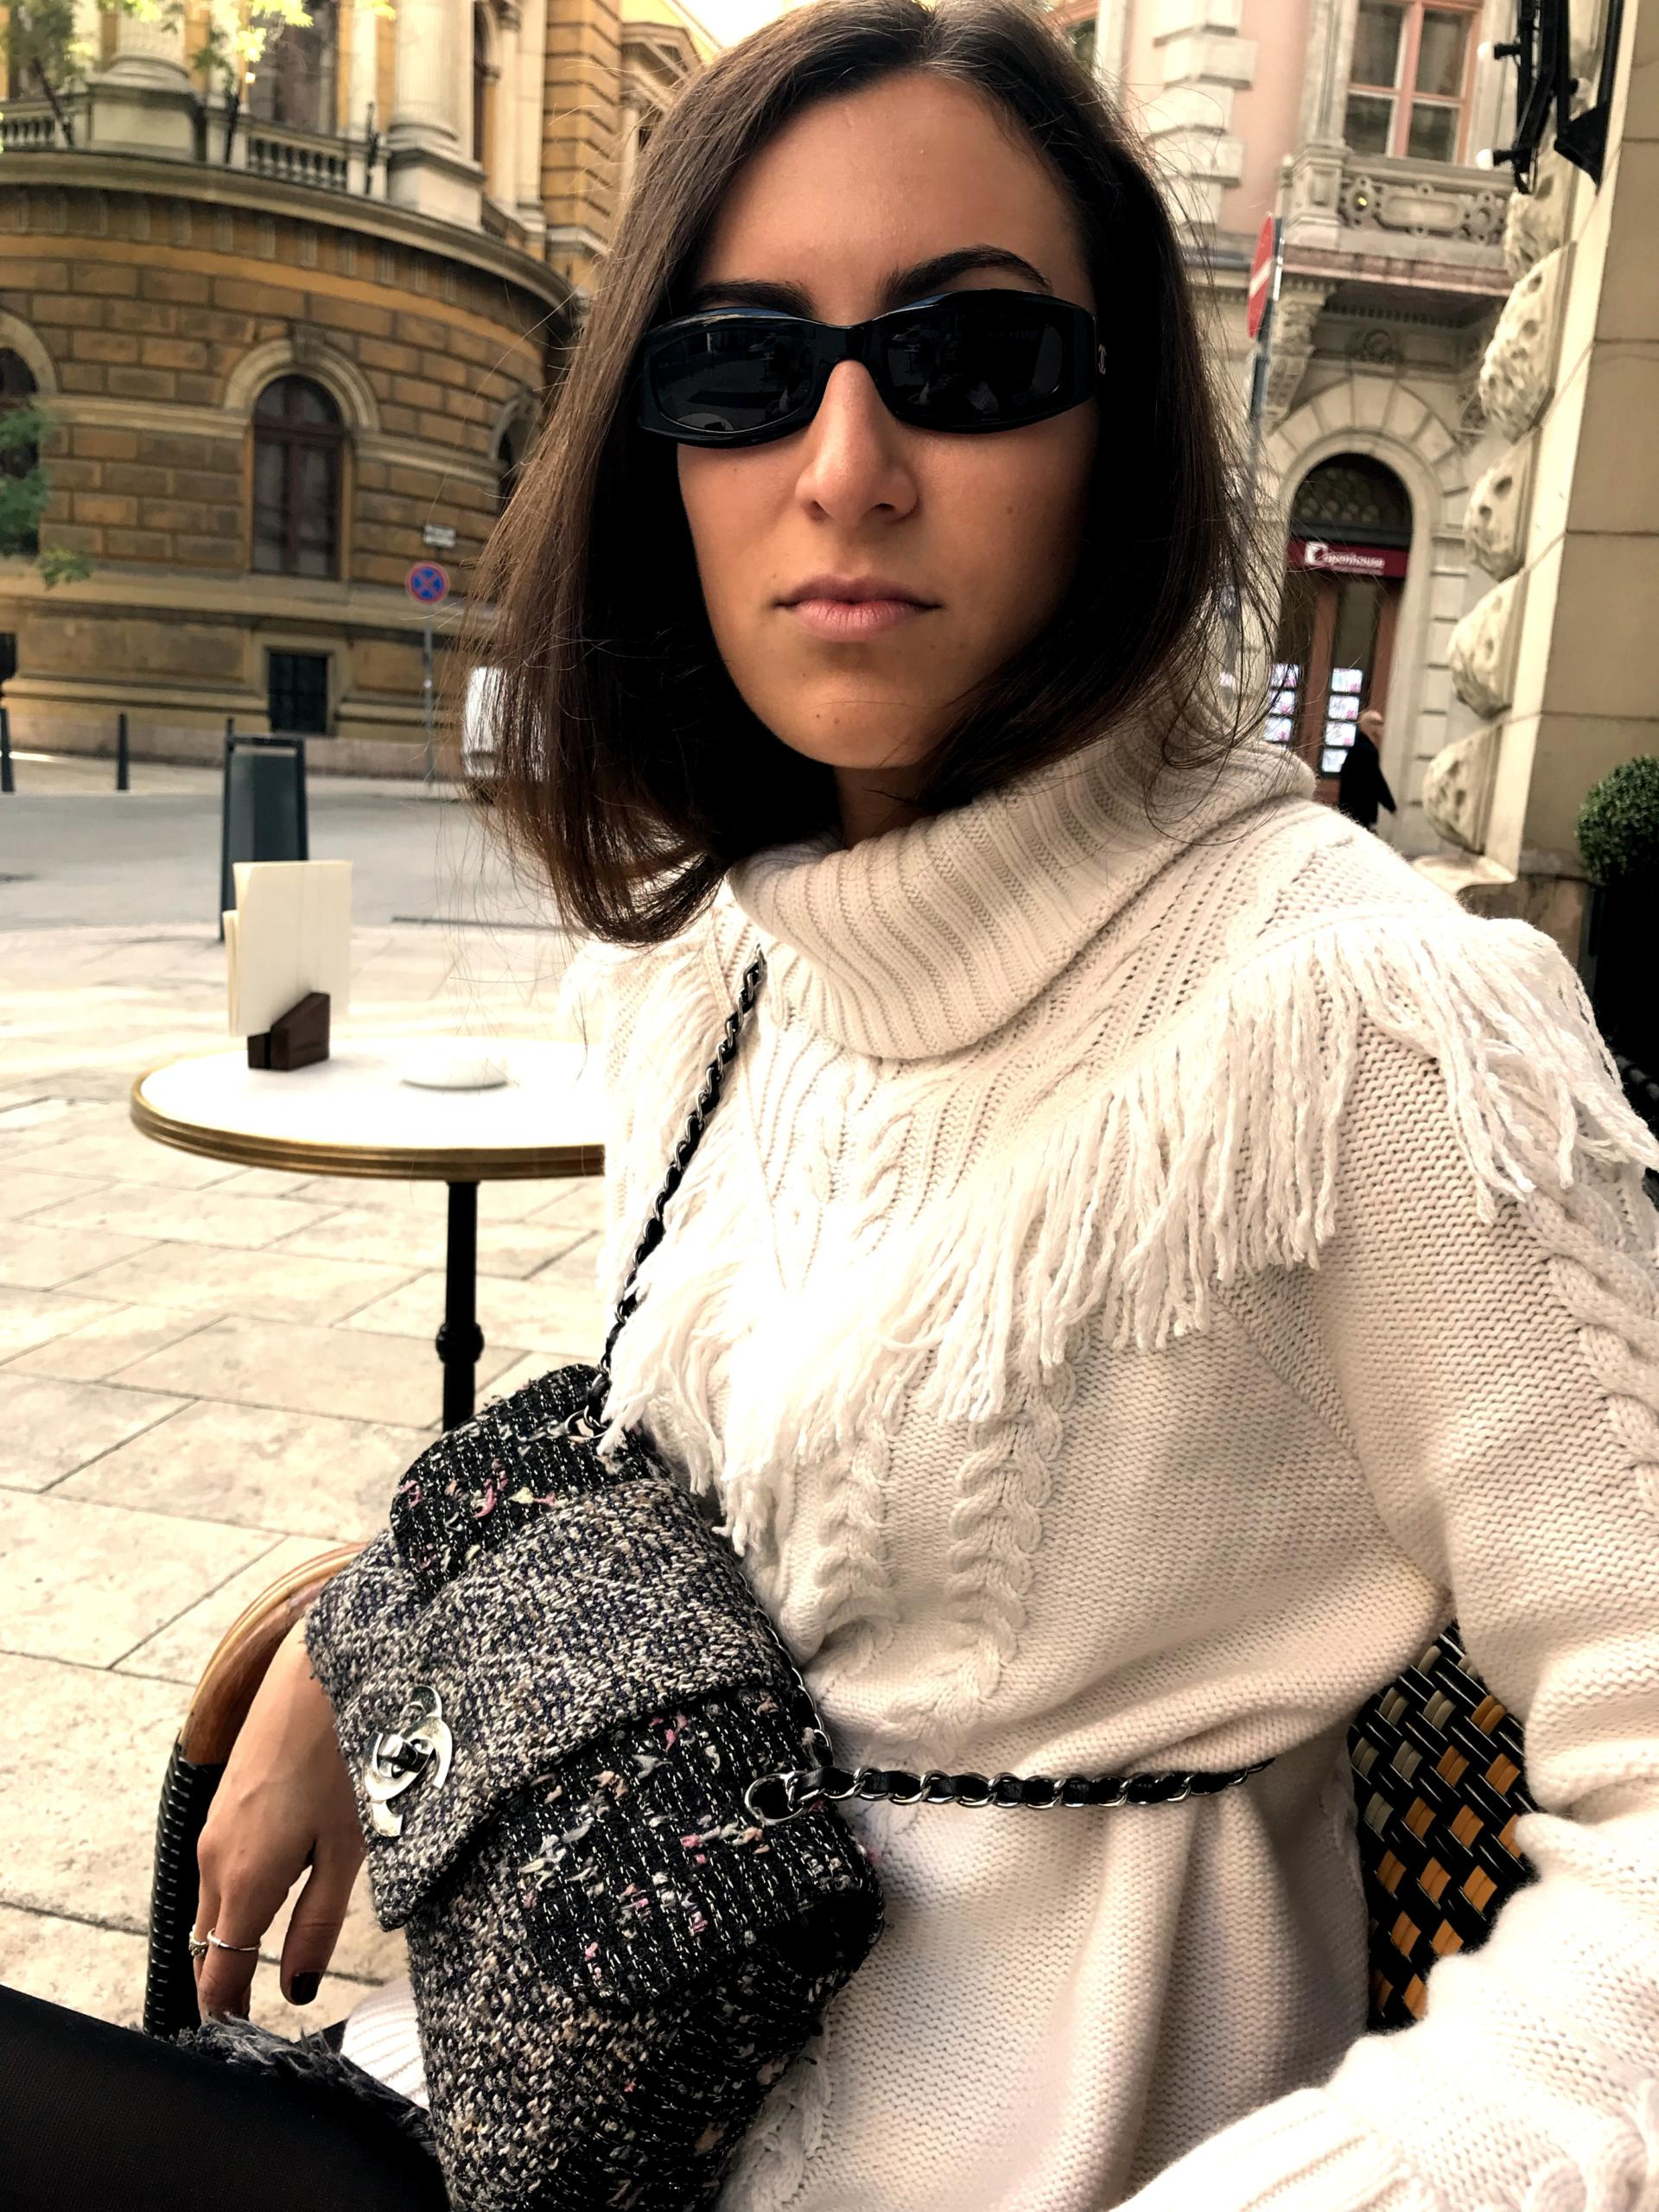 Parisian style in Budapest